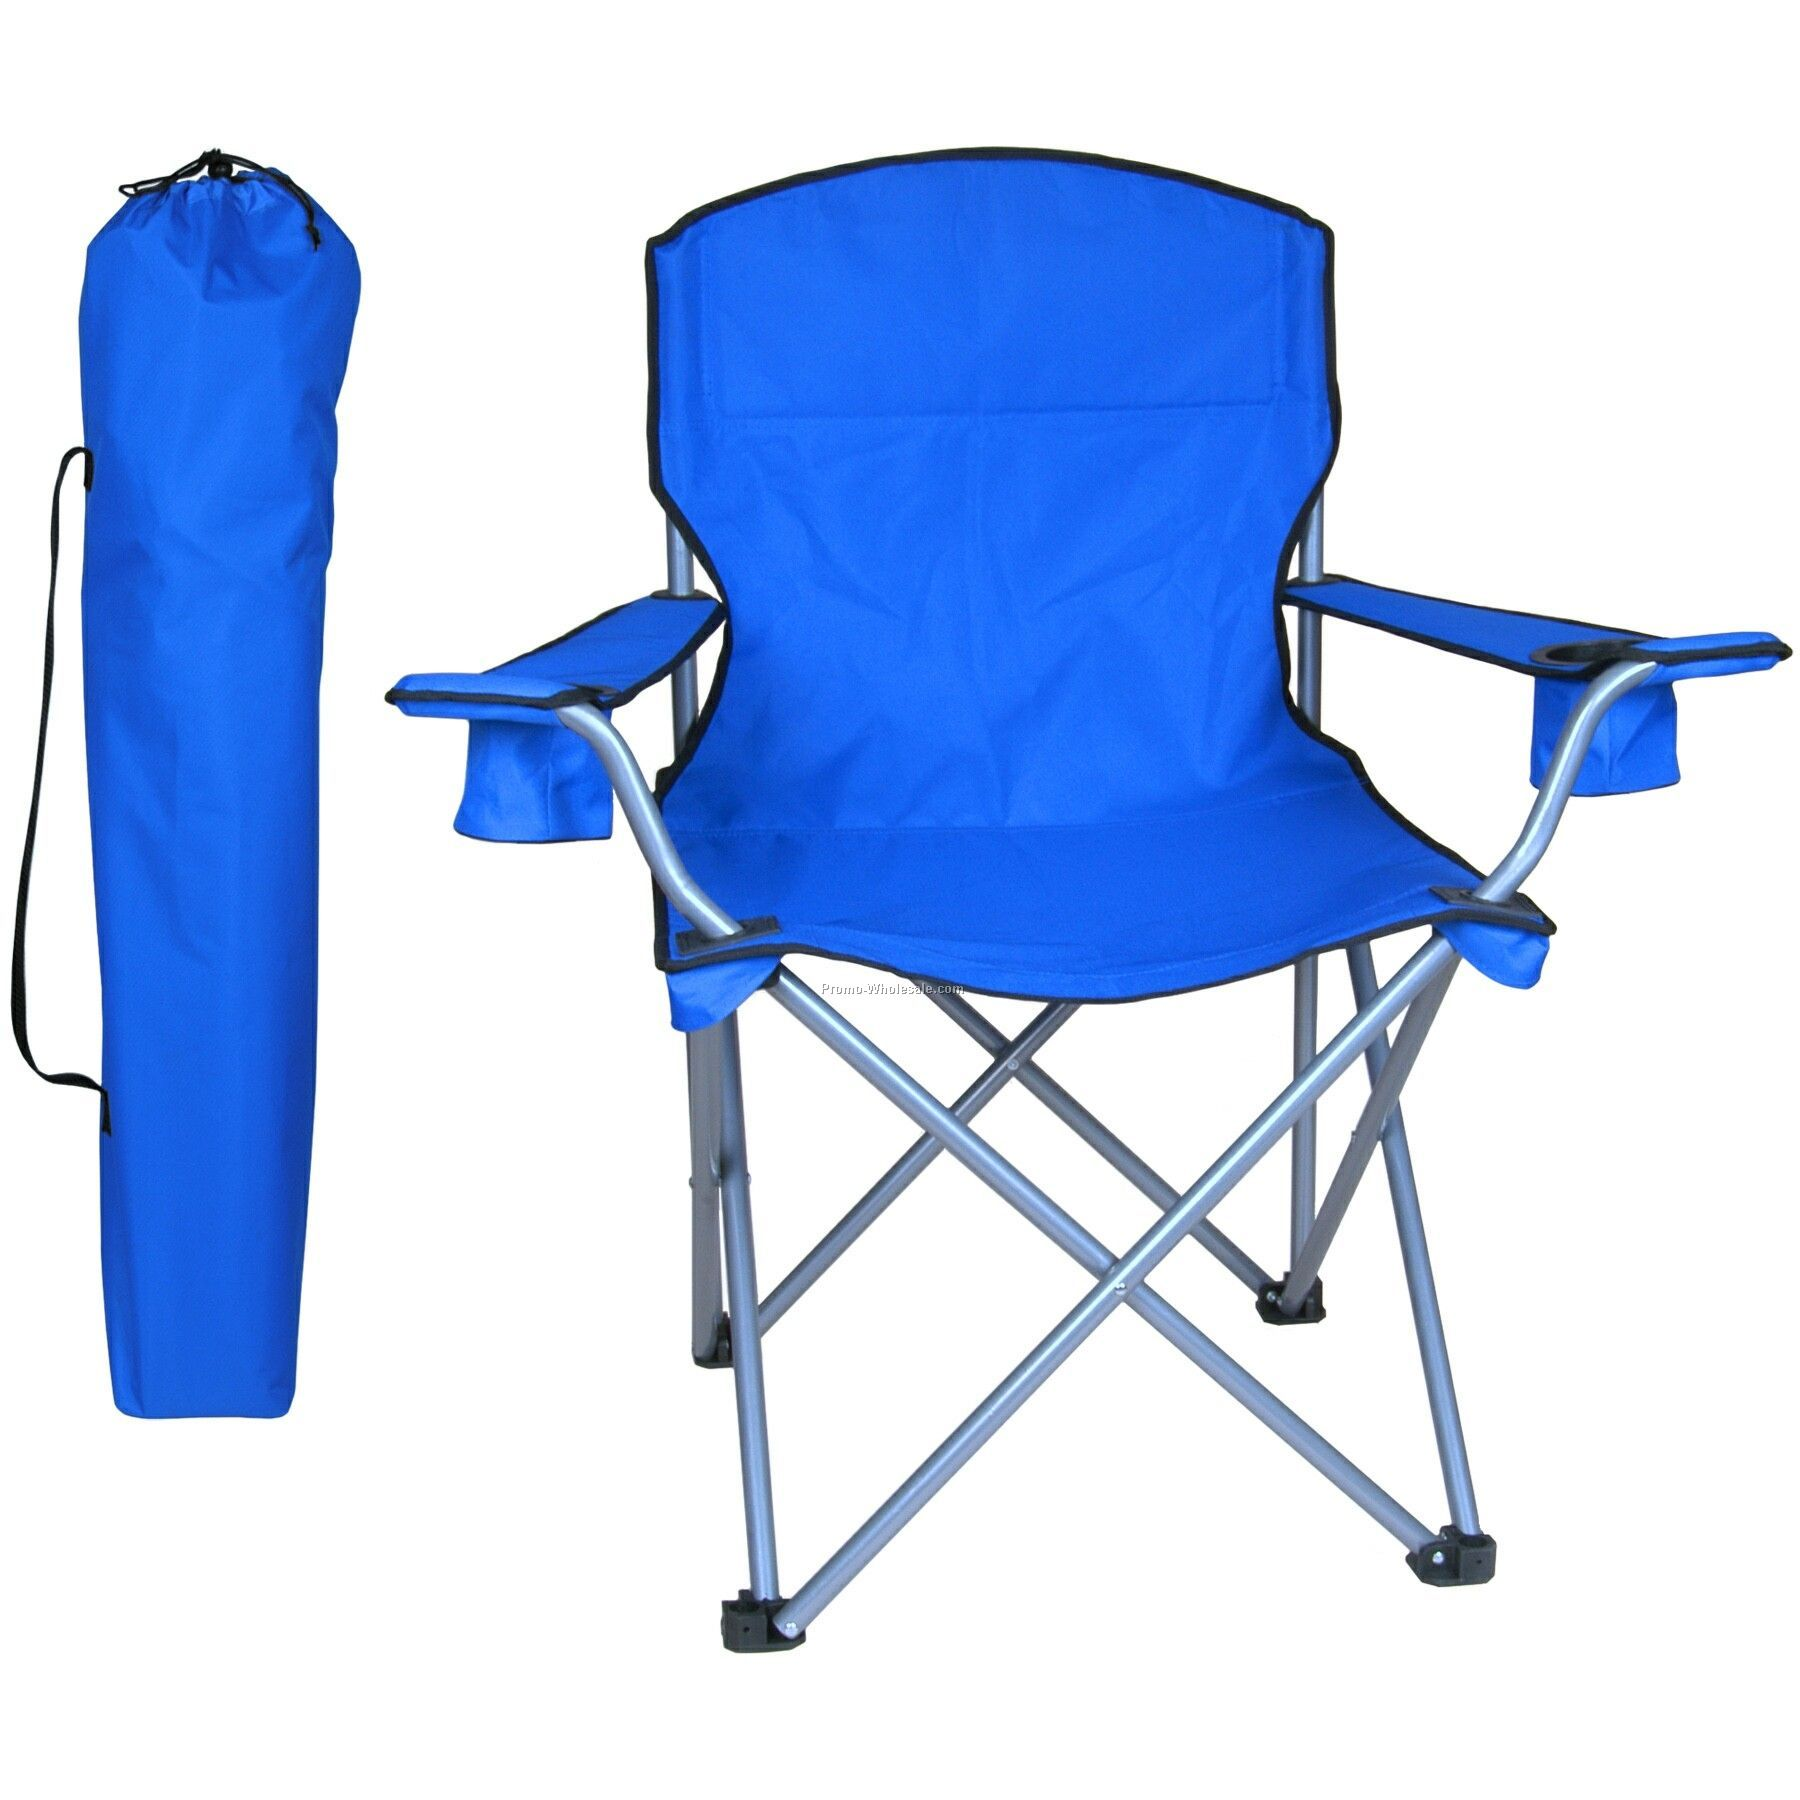 fishing chair umbrella holder zero gravity recliner chairs large captain 39s w arm rests and 2 cup holders 330